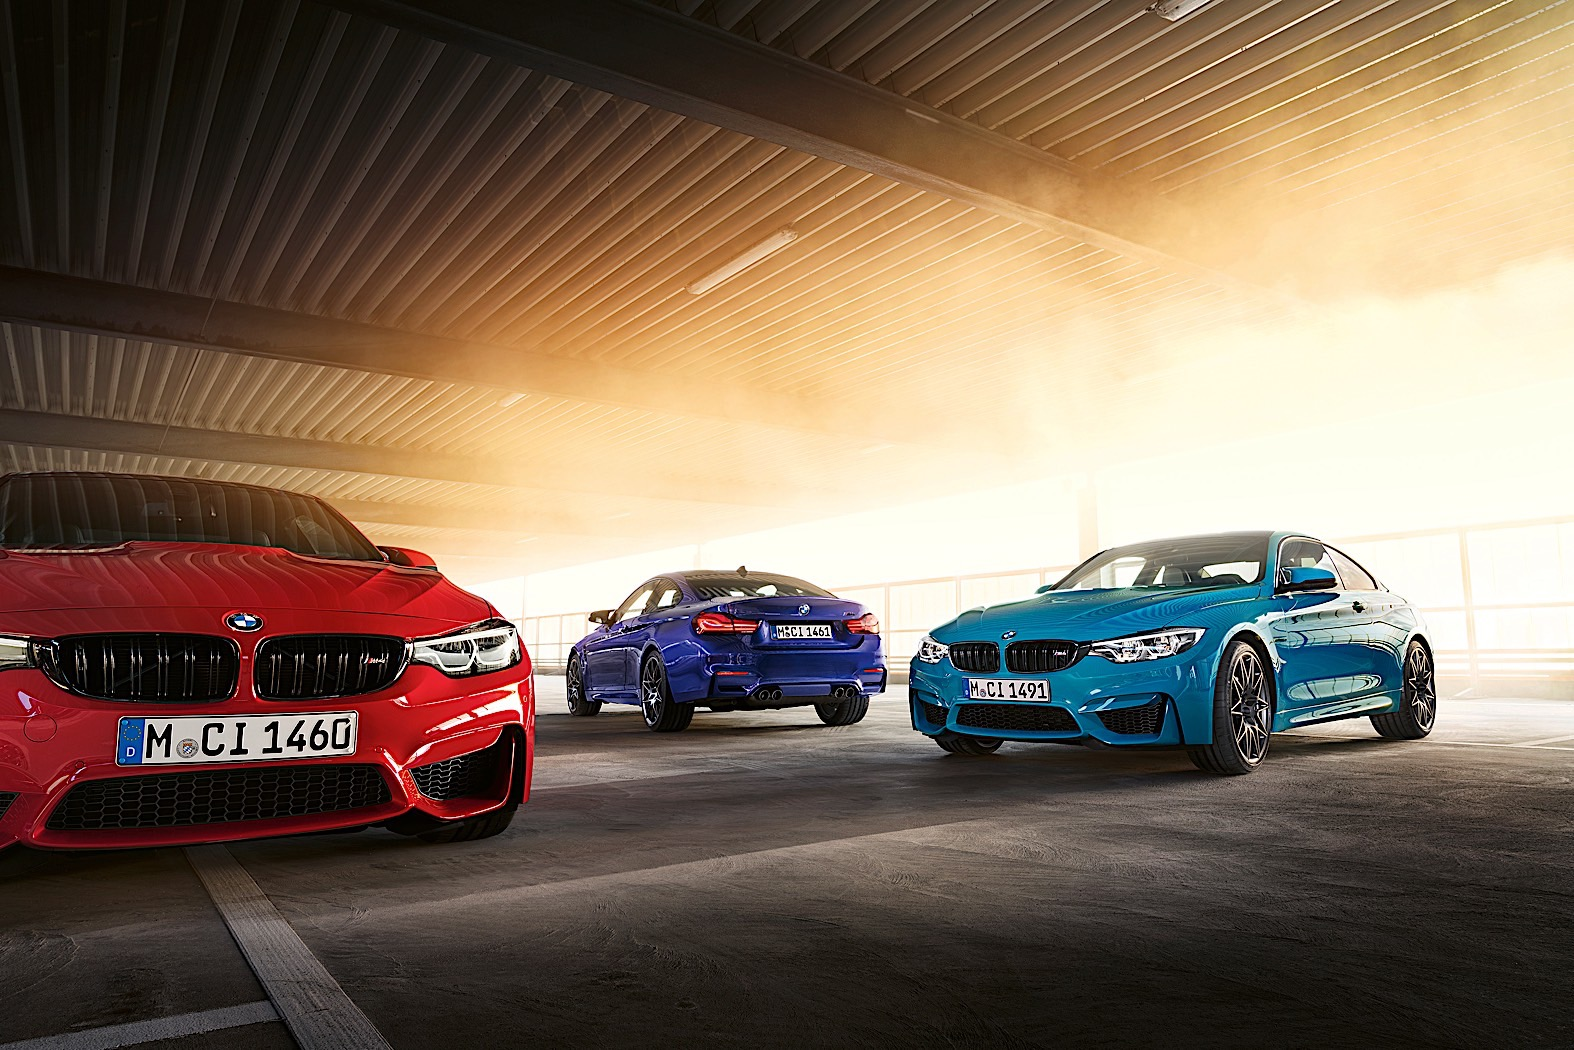 BMW M4 Edition M Heritage edition celebrates racing history